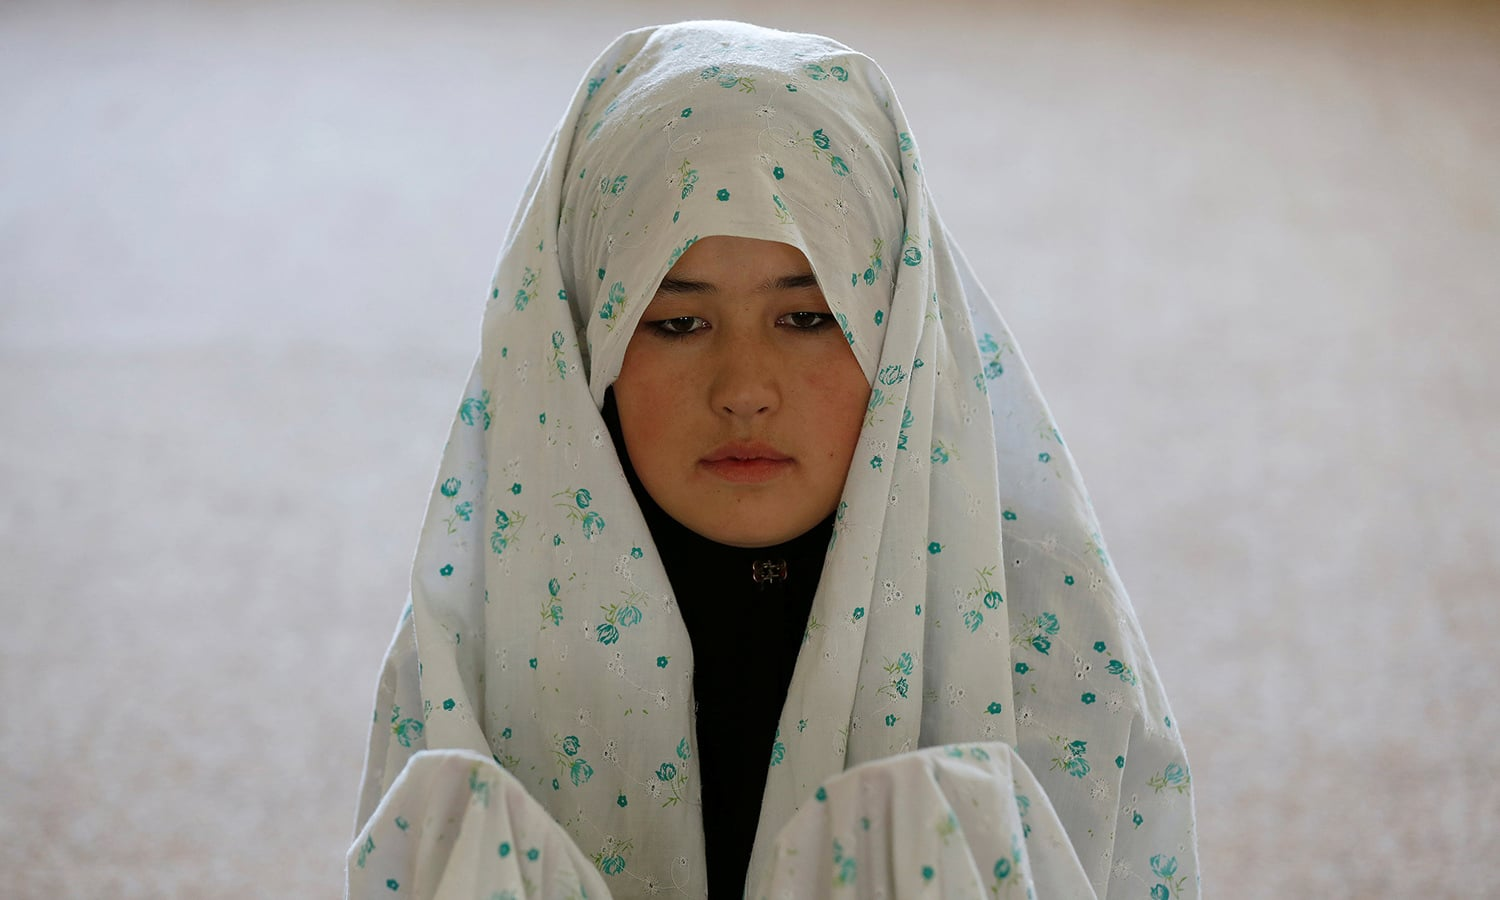 Female soldier Mohazama Najebi, 18, from the Afghan National Army (ANA), prays inside a mosque at the Kabul Military Training Centre (KMTC) in Kabul. ─Reuters